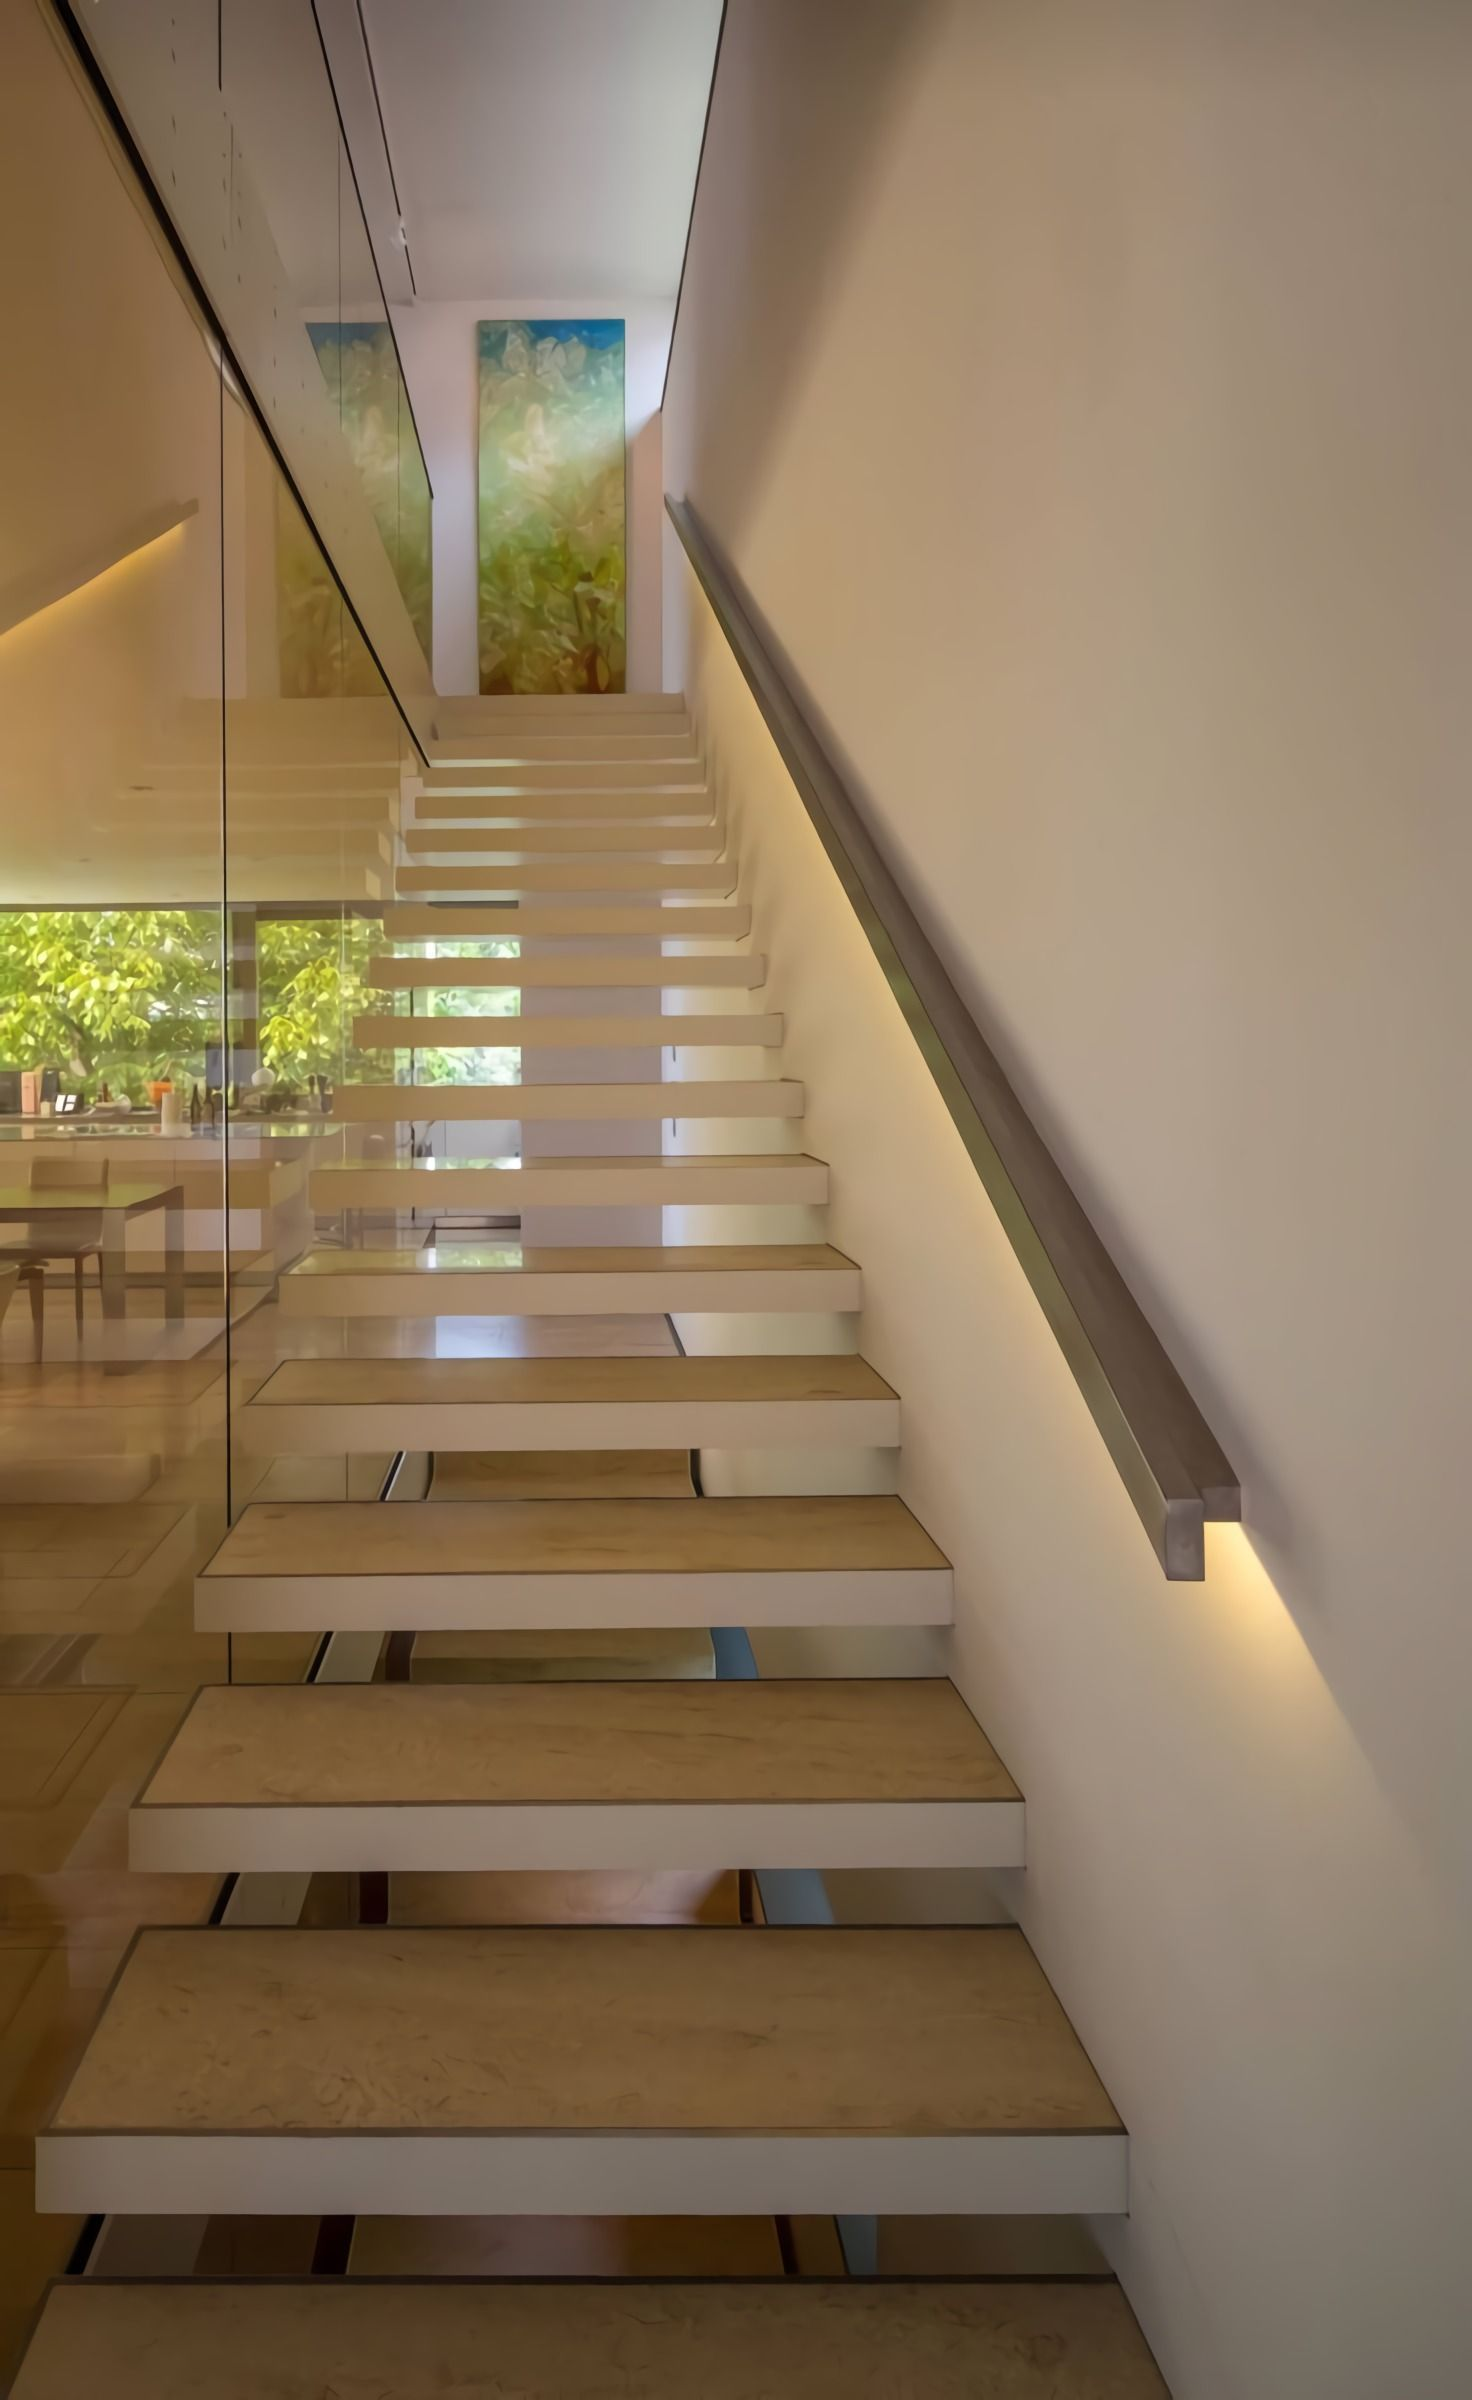 17 Light Stairs Ideas You Can Start Using Today In 2020